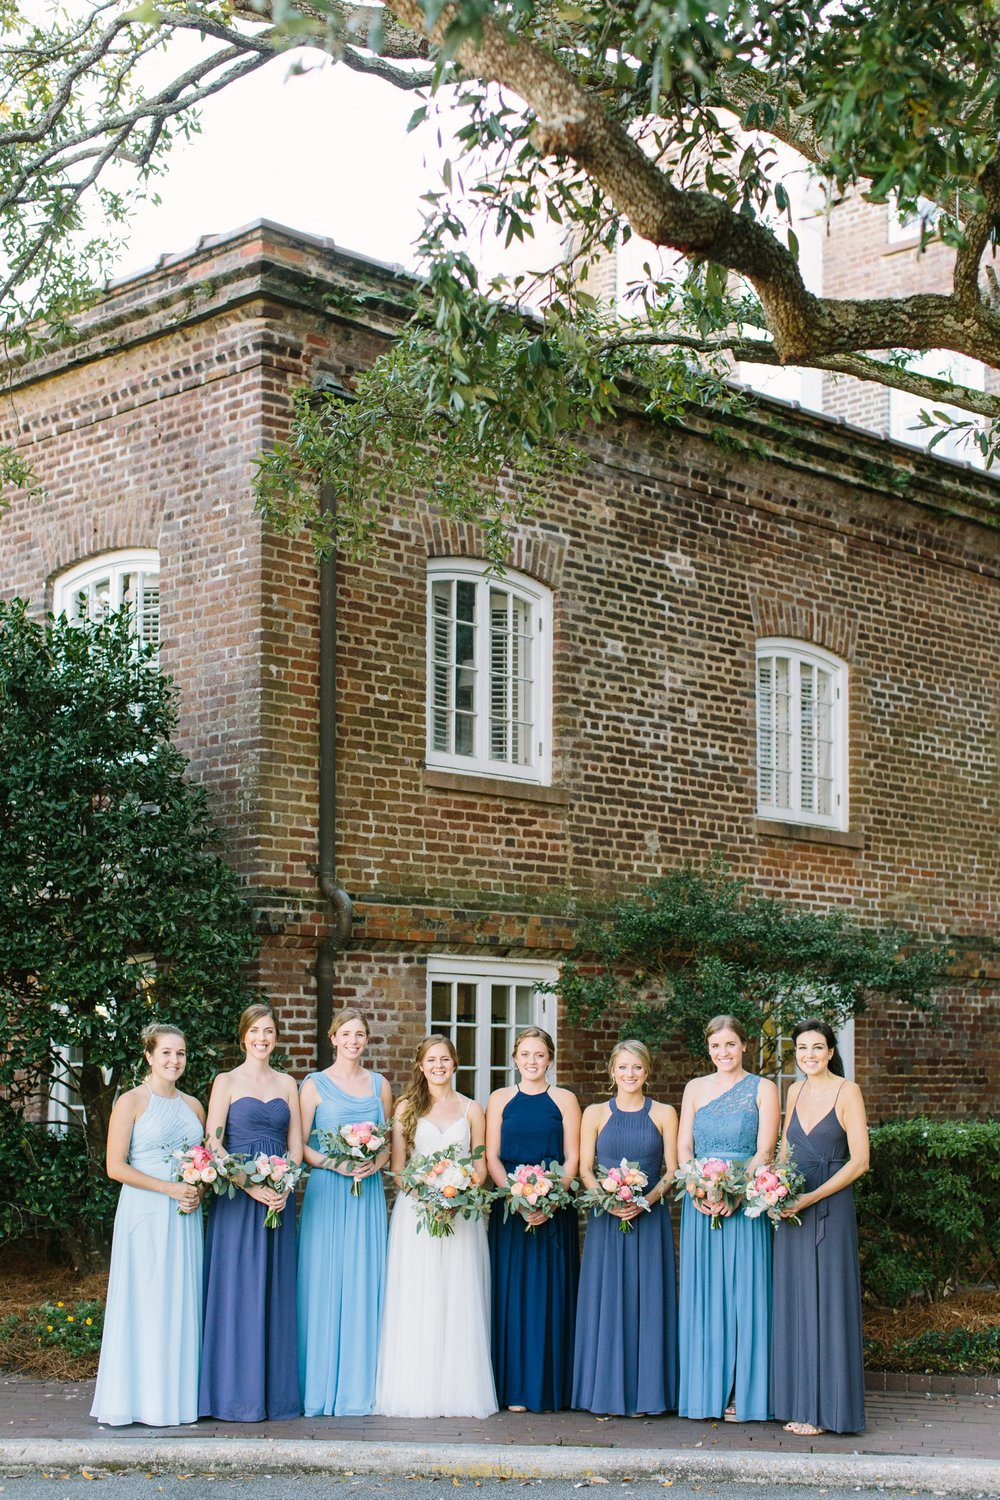 lindsey_a_miller_photography_historic_rice_mill_charleston_wedding_24.jpg